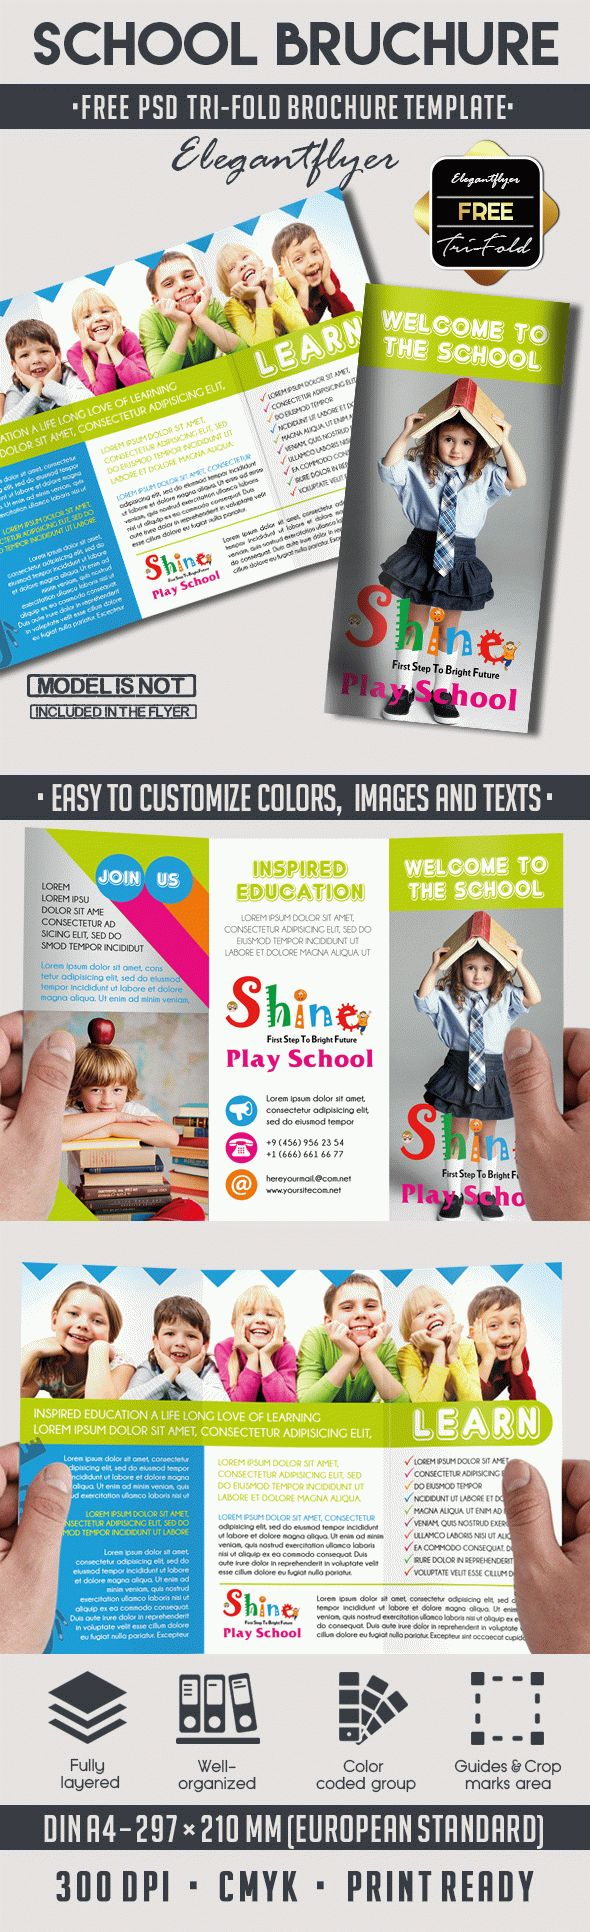 School free psd tri fold psd brochure template by for Psd template brochure